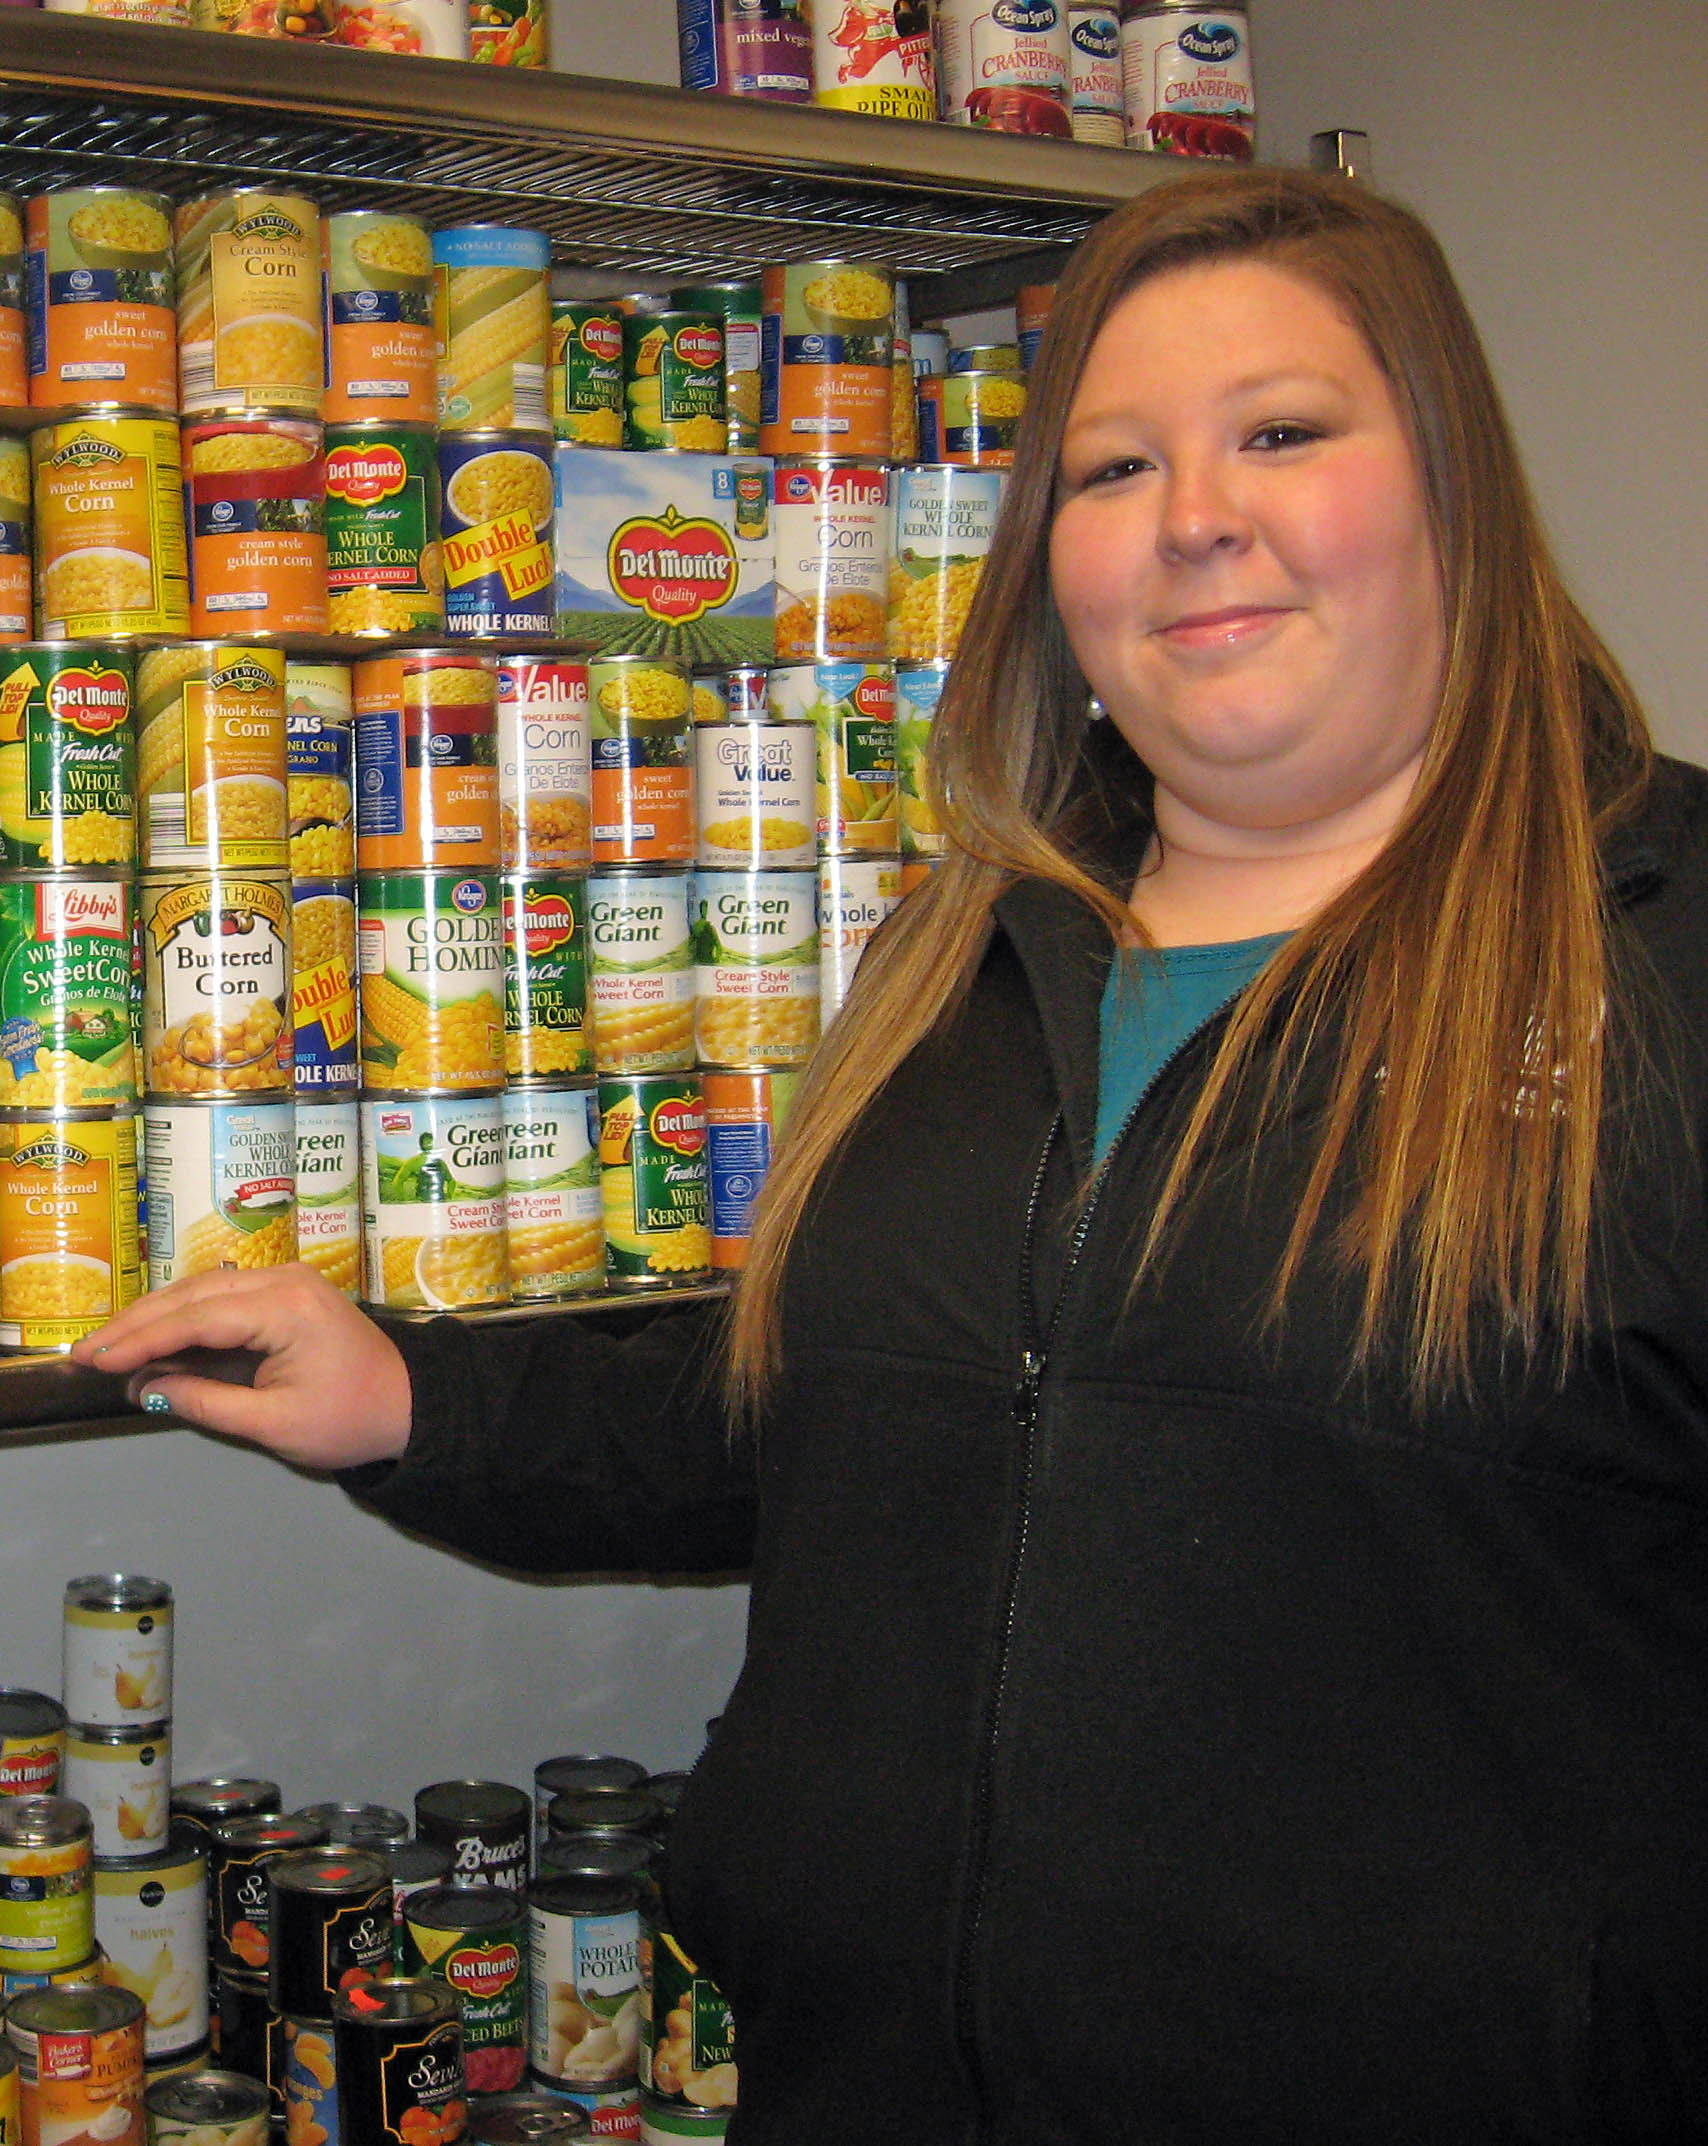 MTSU Student Food Pantry needs 'food for finals' as stockpiles run low